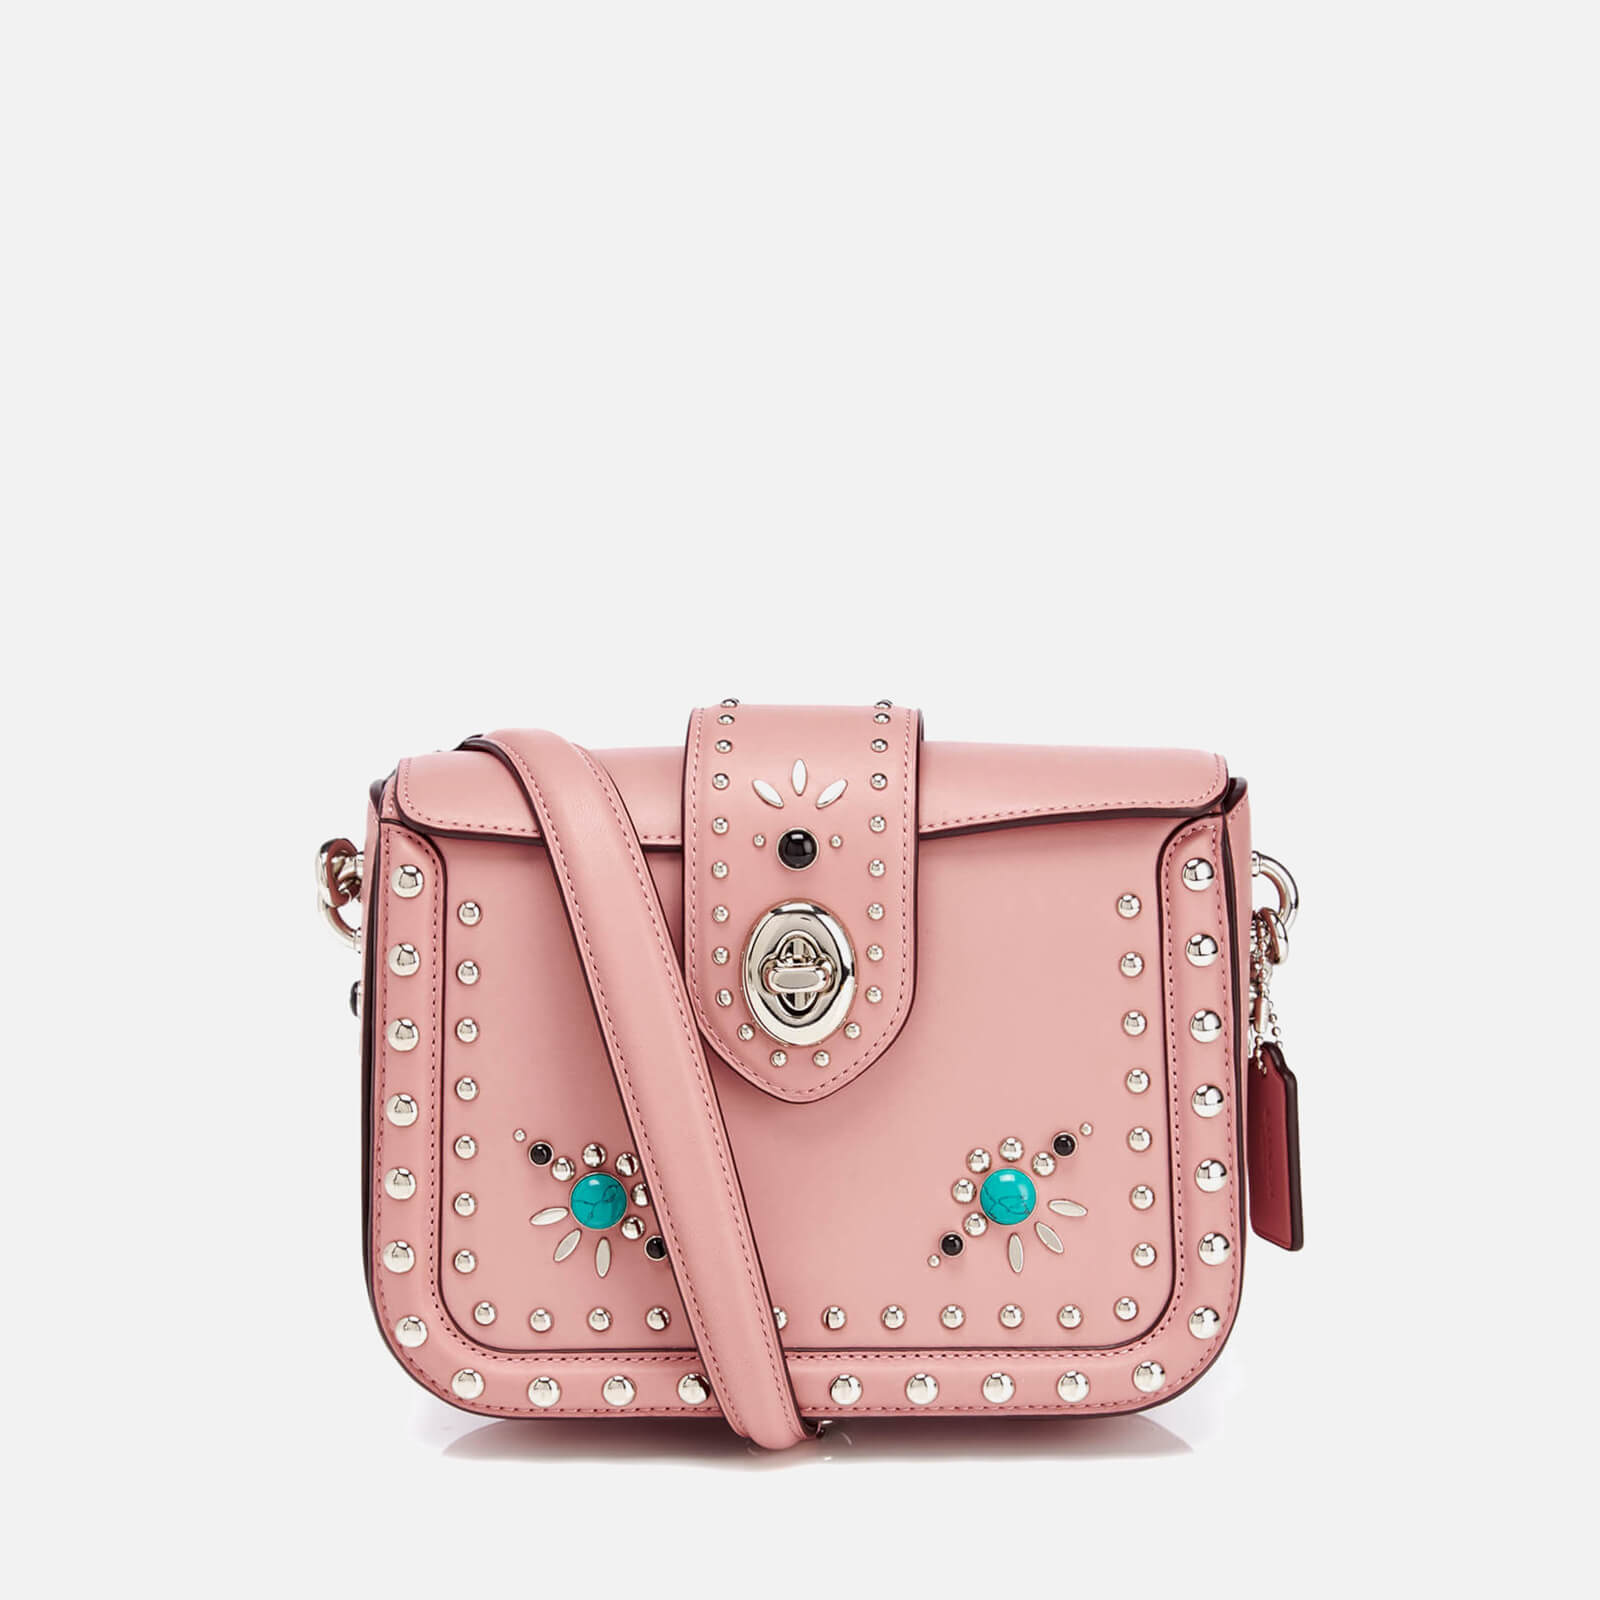 1f718ec406 Coach Women s Page Cross Body Bag - Pink - Free UK Delivery over £50